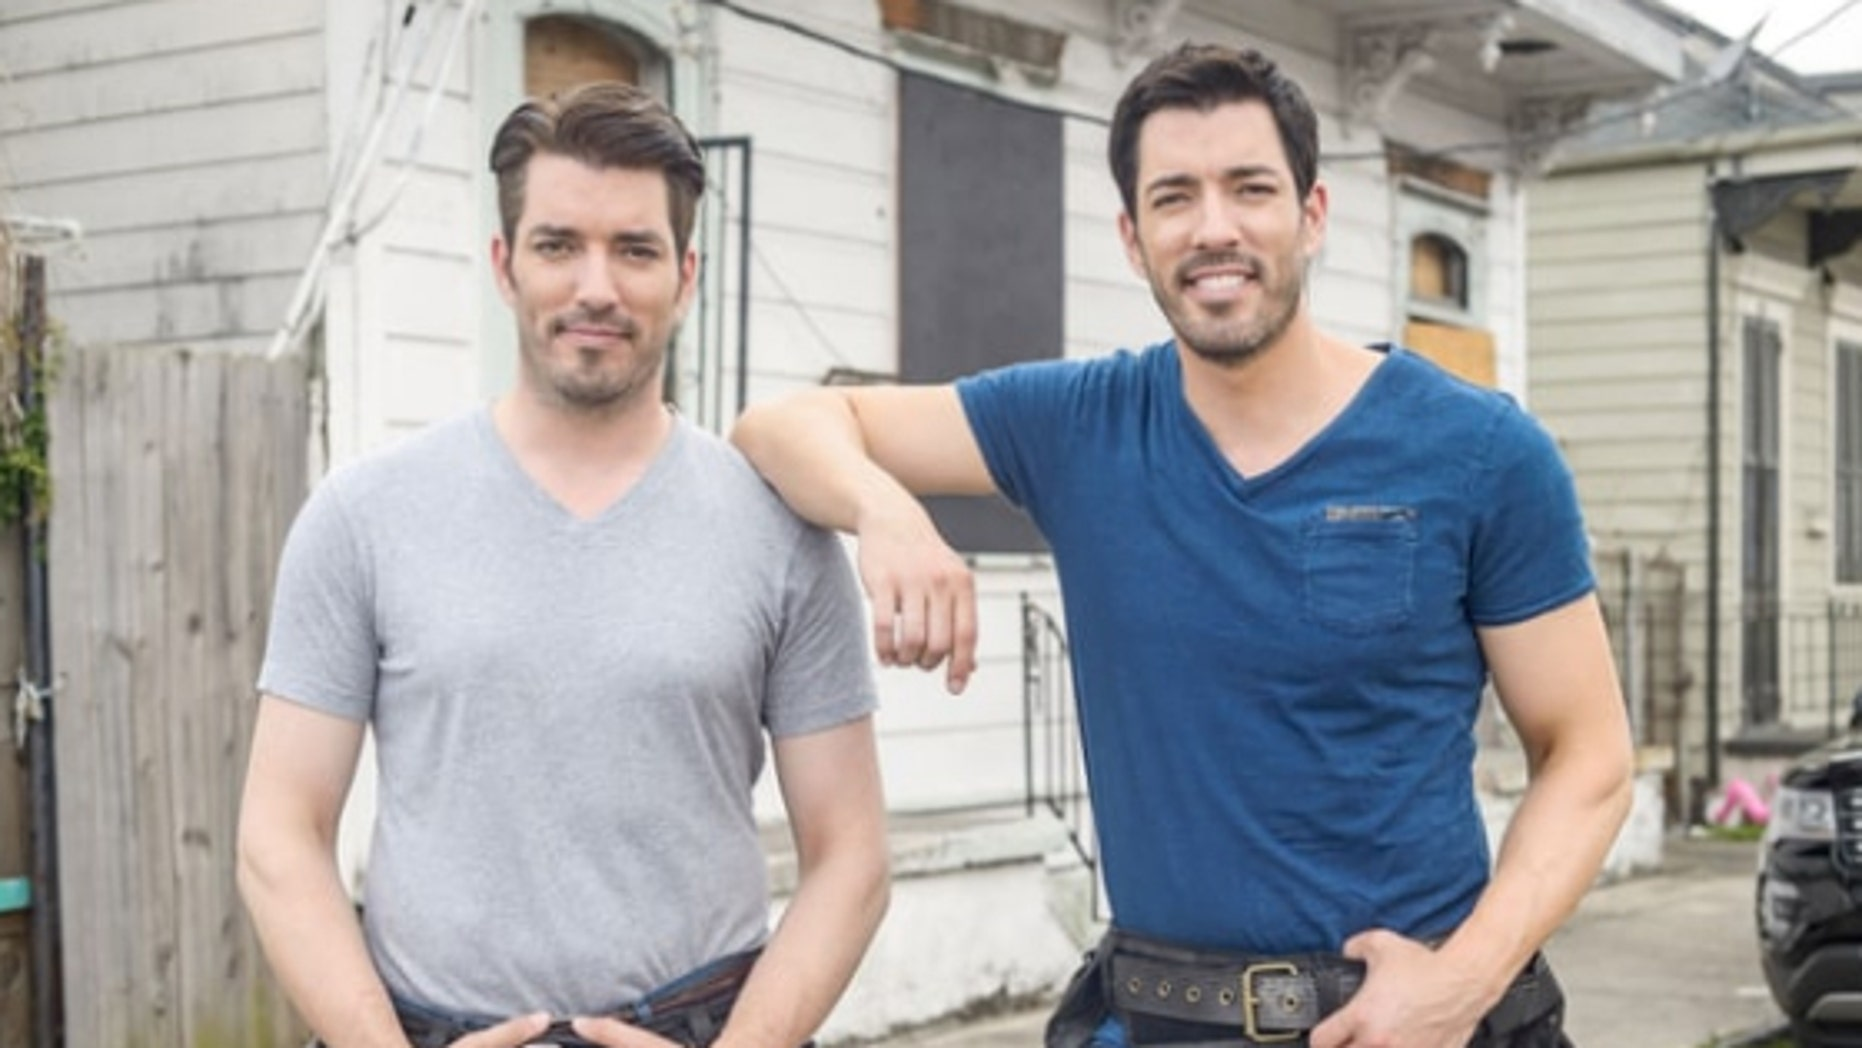 'Property Brothers' Jonathan and Drew Scott talk to Fox News about what's next on their bucket list: joining the 'scripted' space.